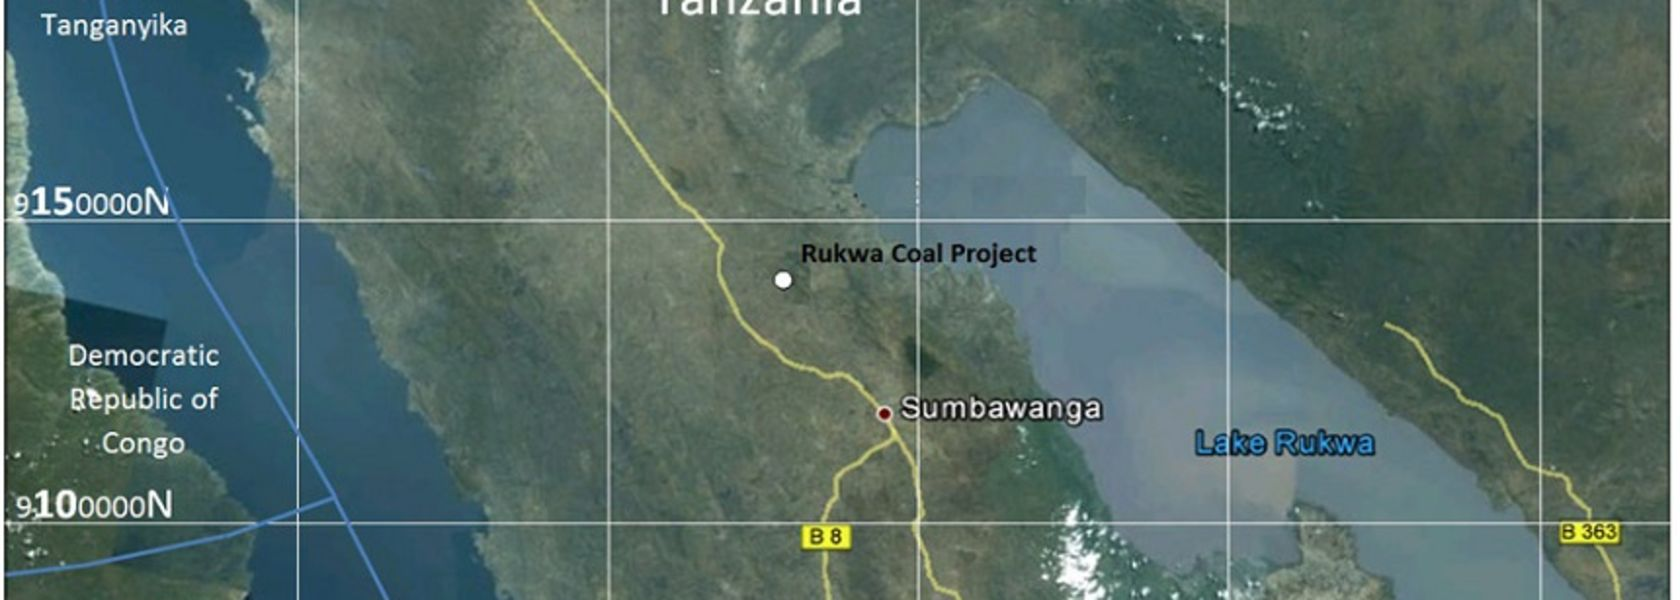 Rukwa coal project progress sparks owner